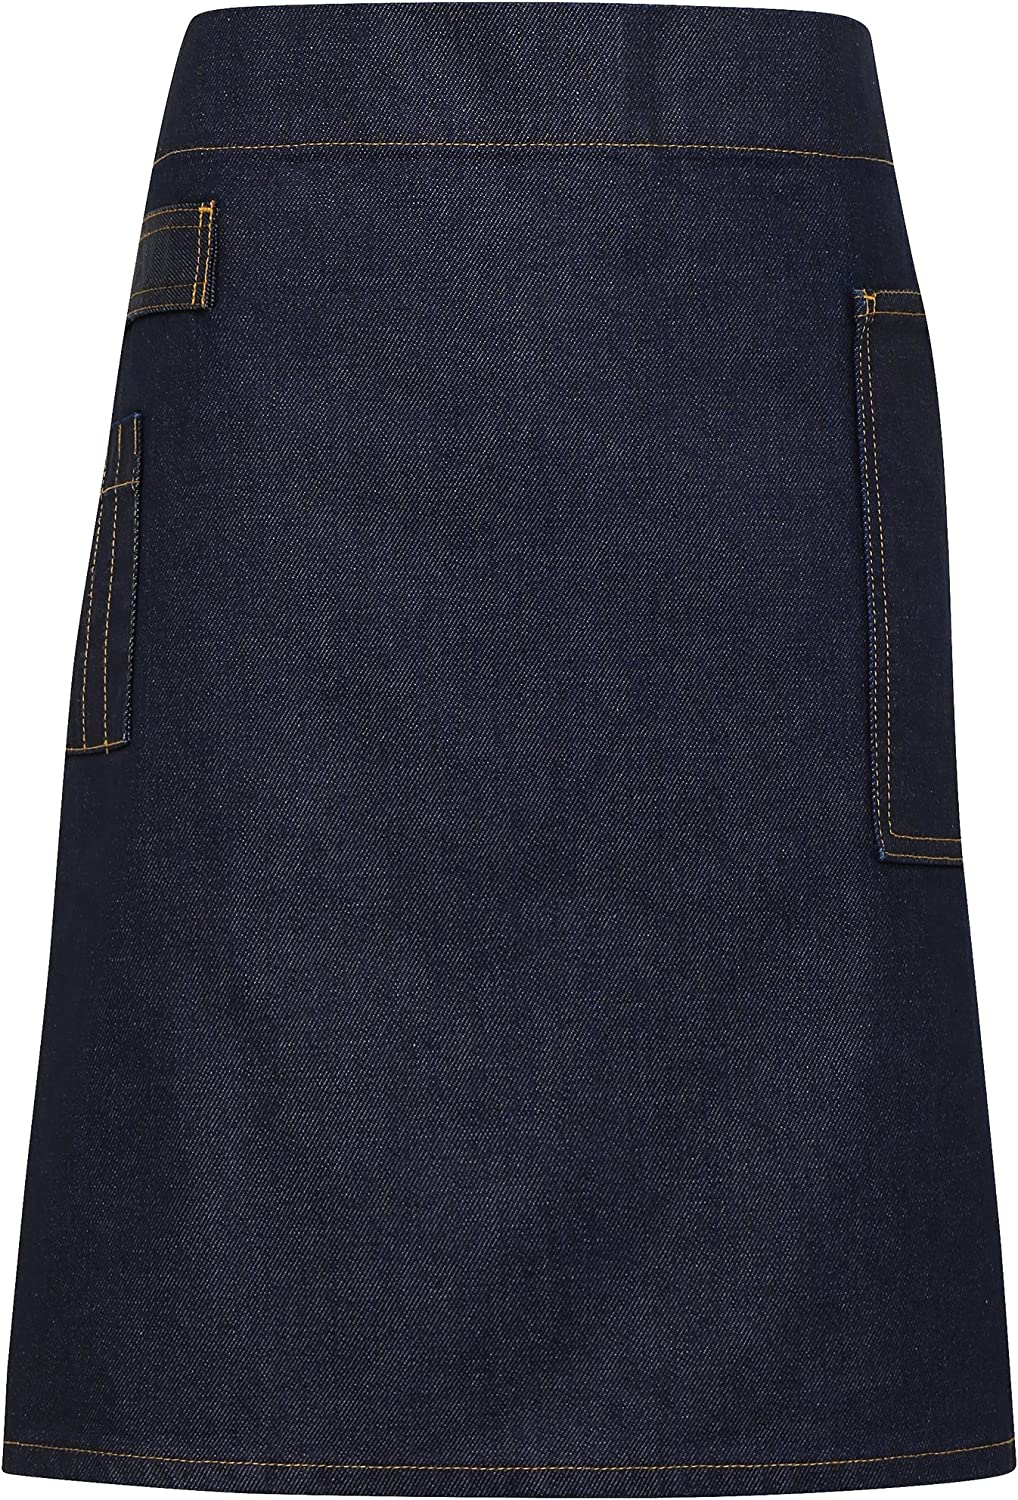 Online limited product Premier PR135 Division waxed-look denim 5 ☆ popular apron Choice of waist c